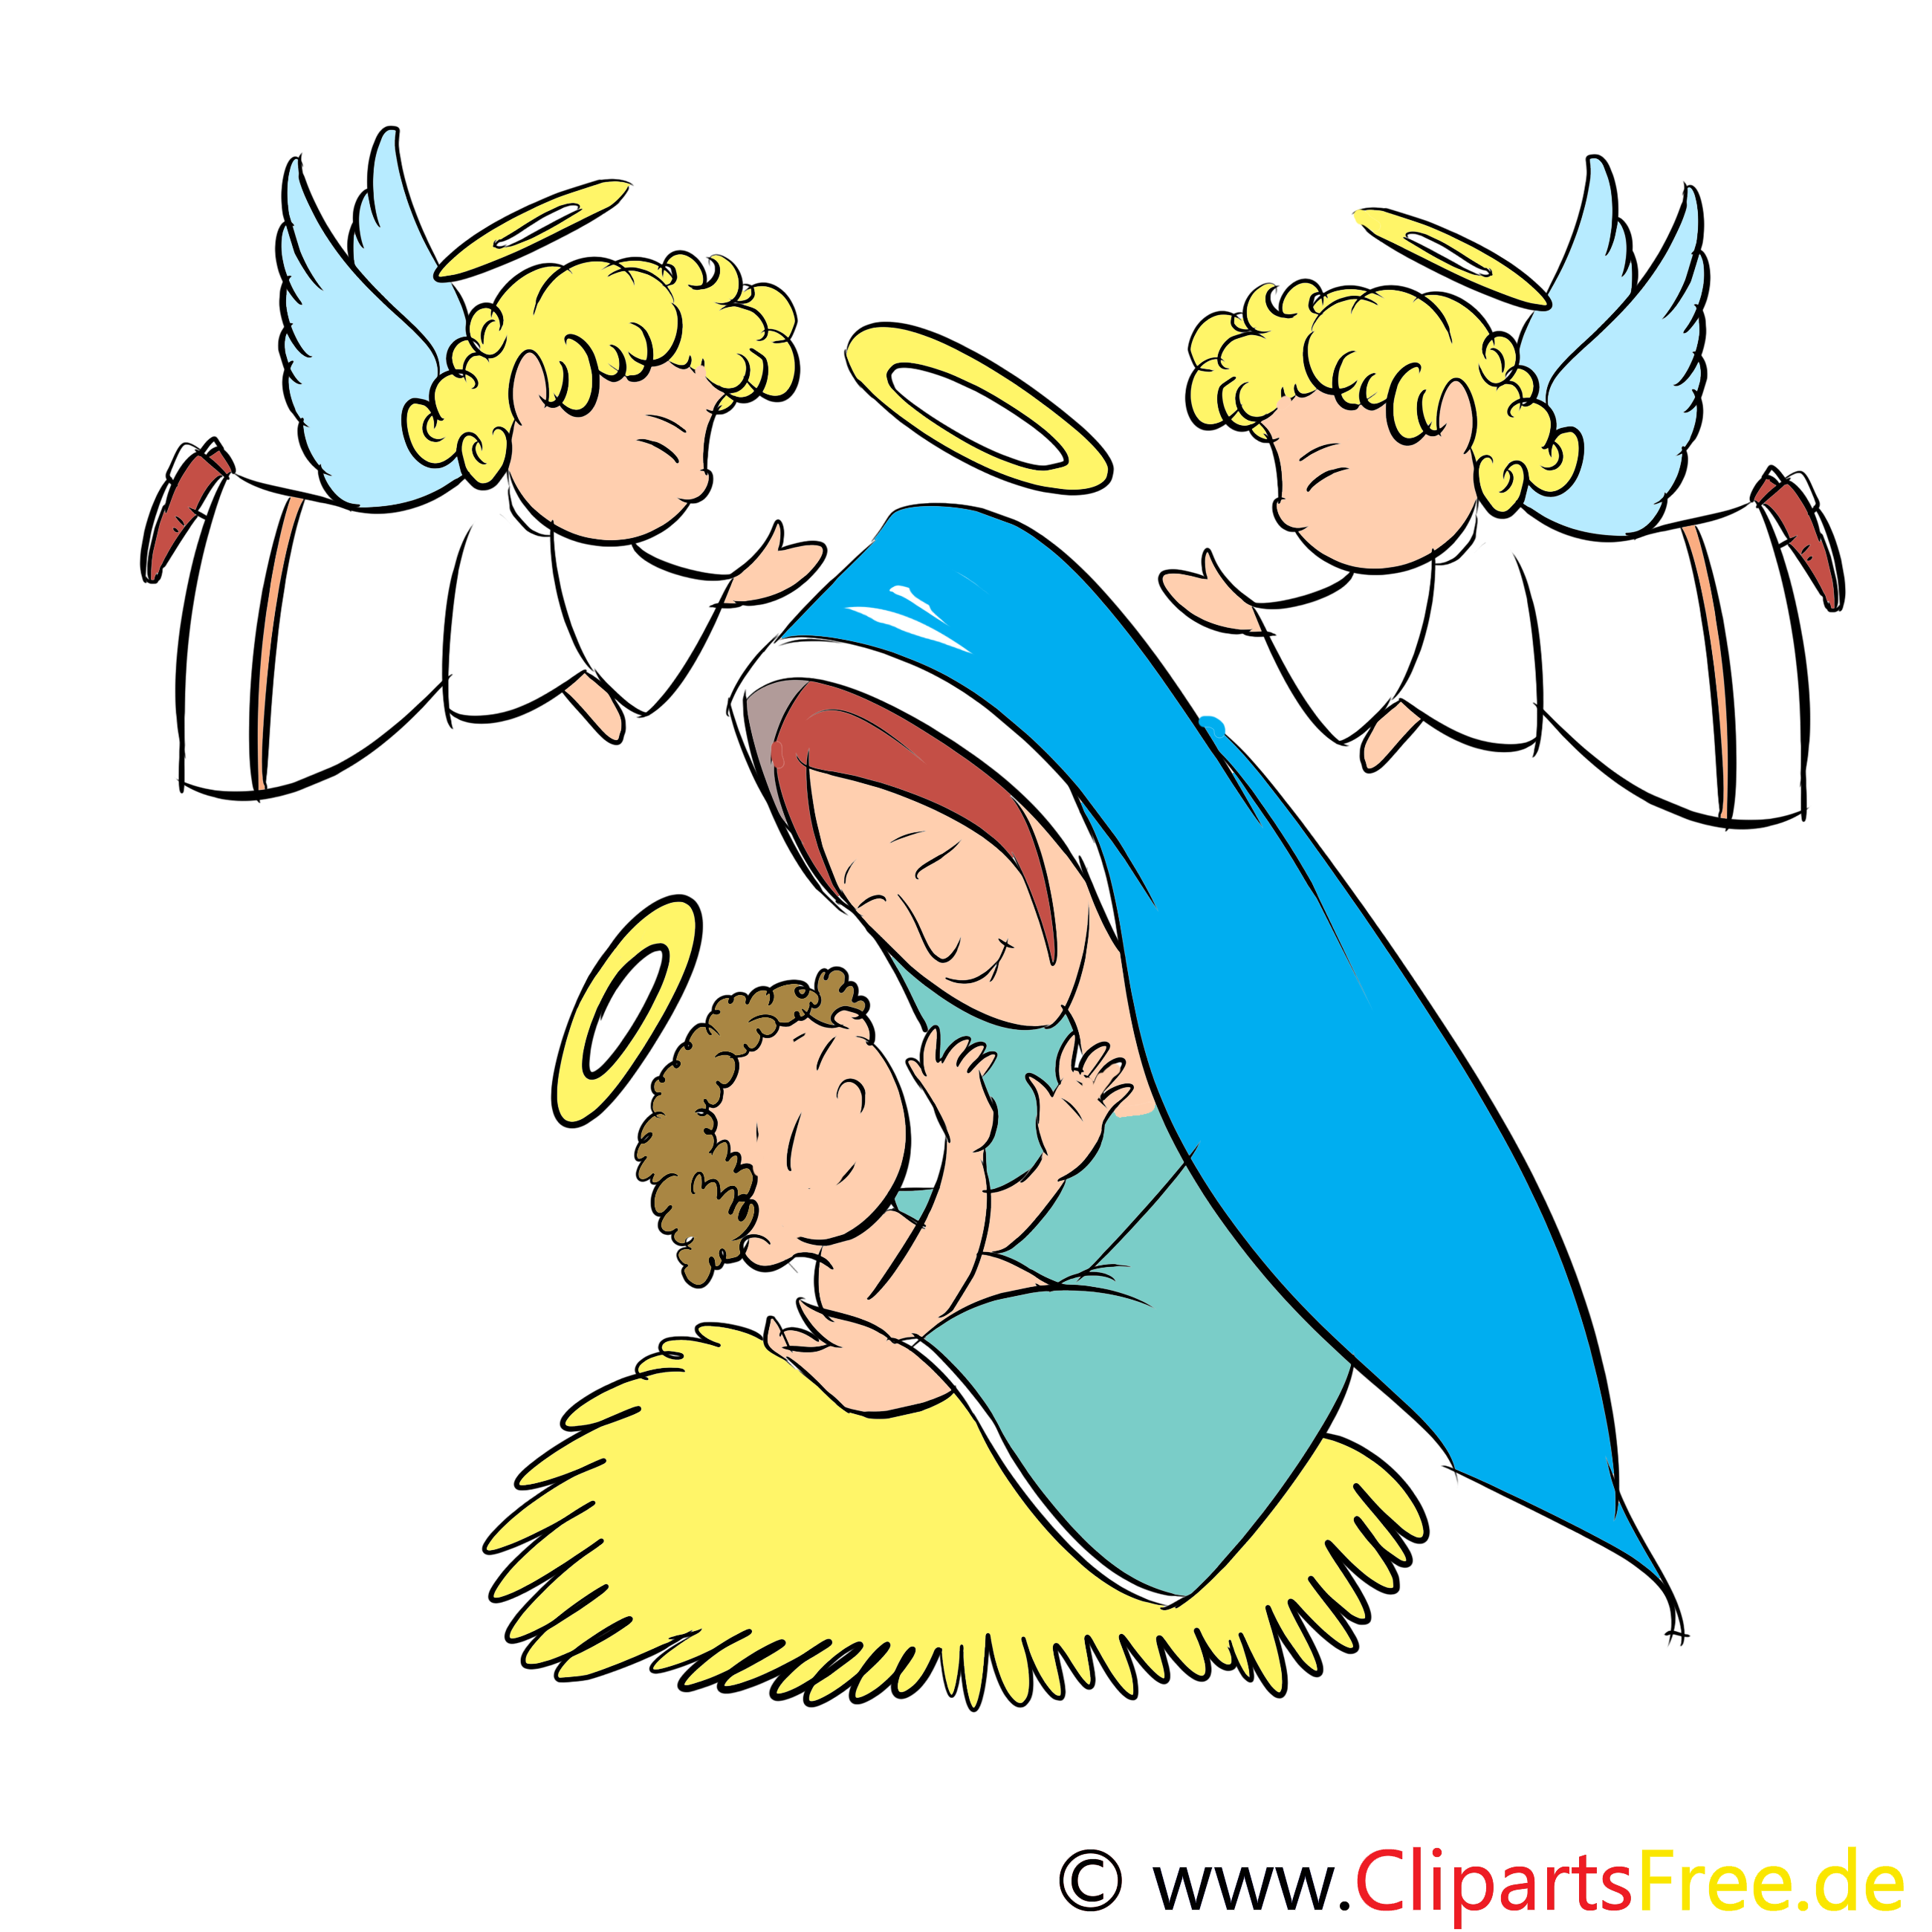 Advent, Weihnachten Clipart Bilder gratis